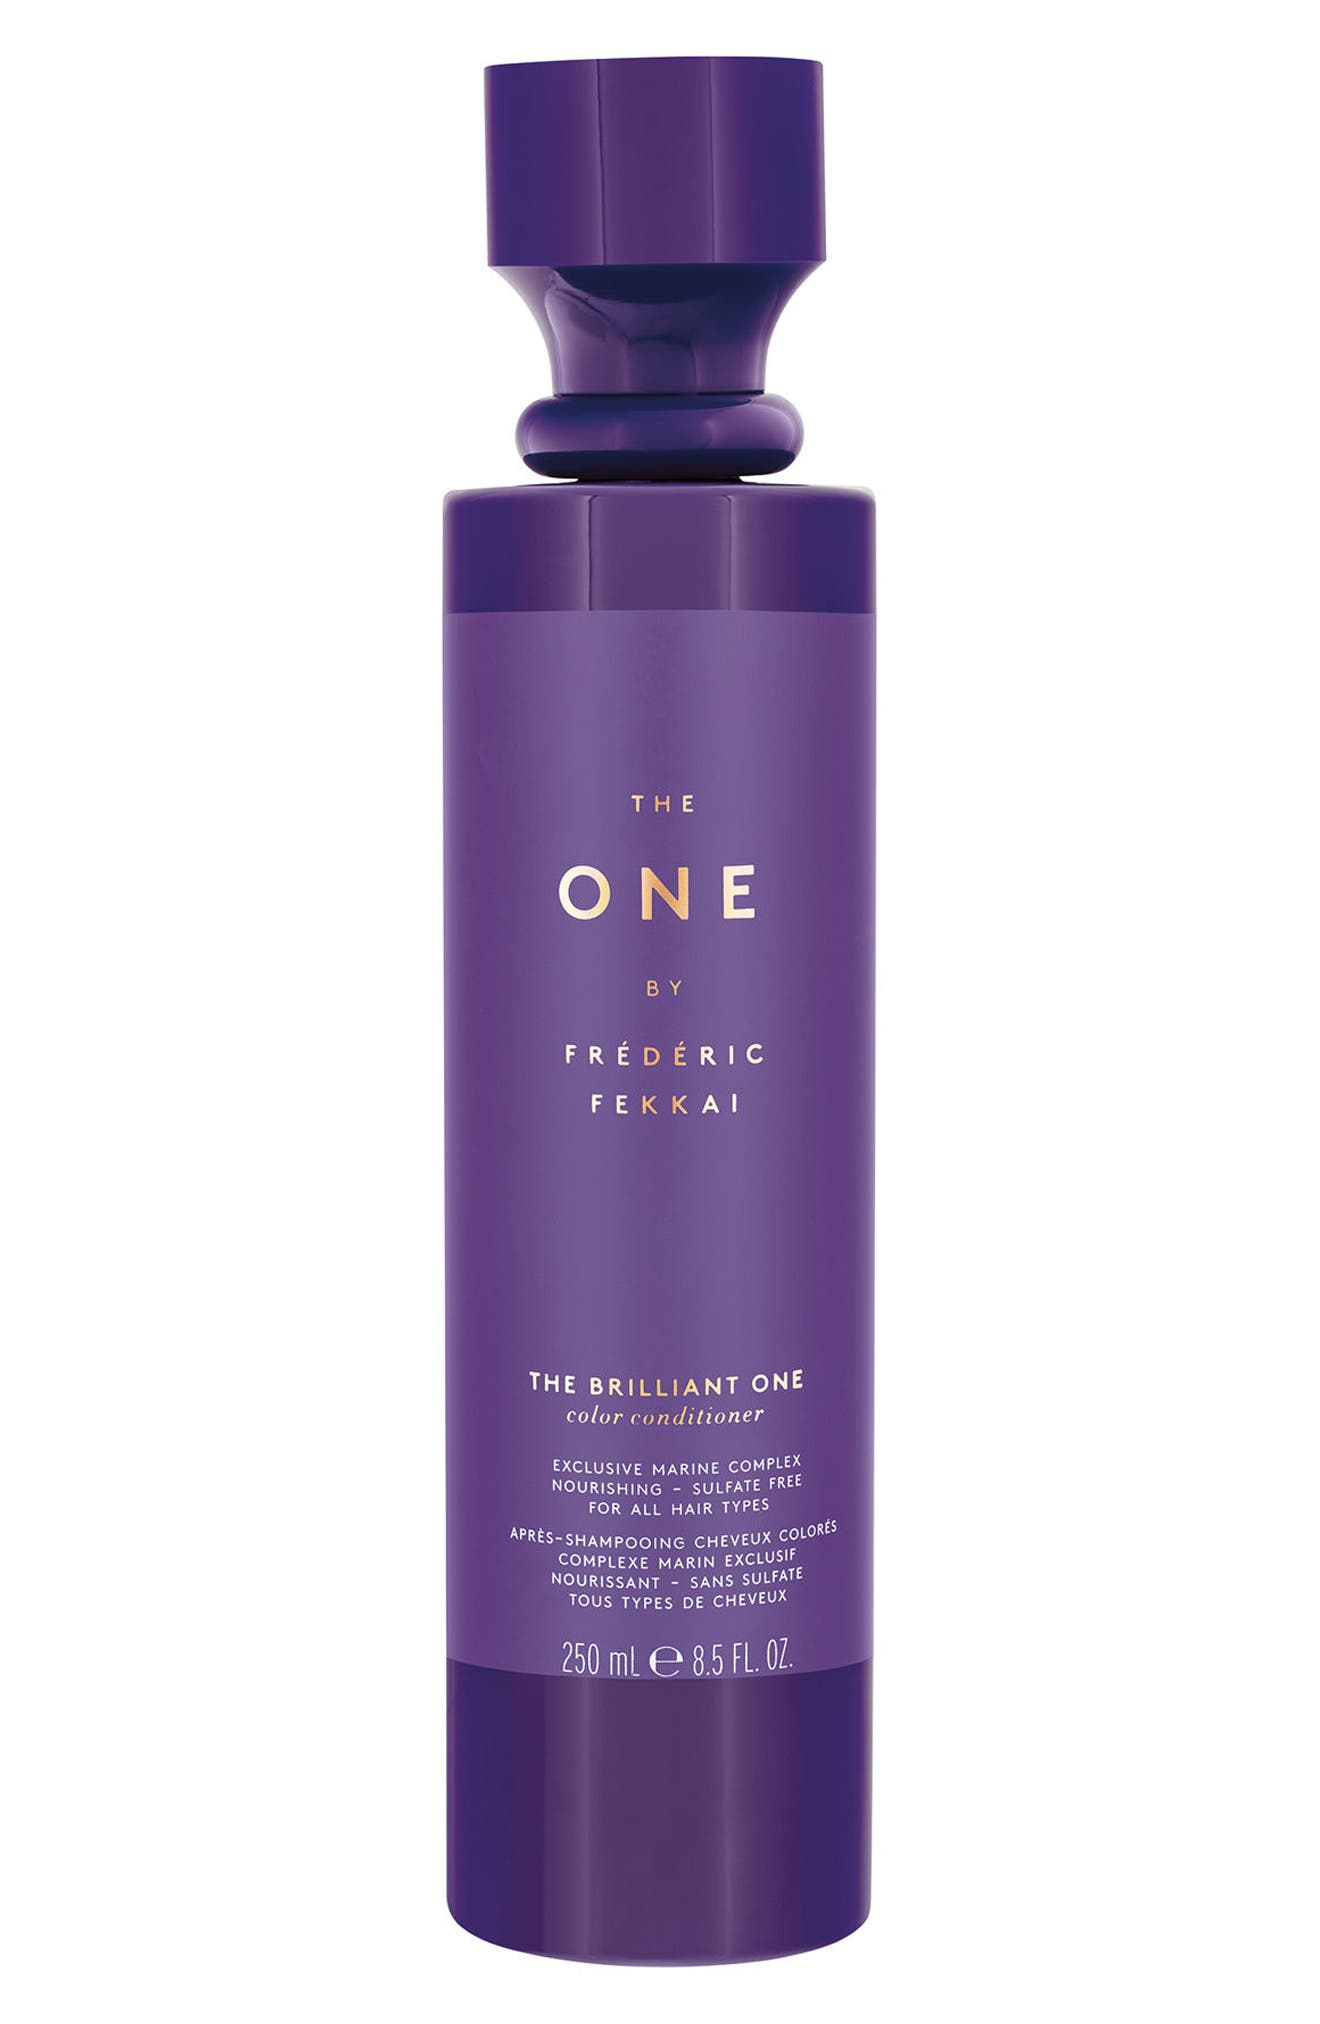 The One by Frédéric Fekkai The Brilliant One Color Conditioner,                             Main thumbnail 1, color,                             NO COLOR